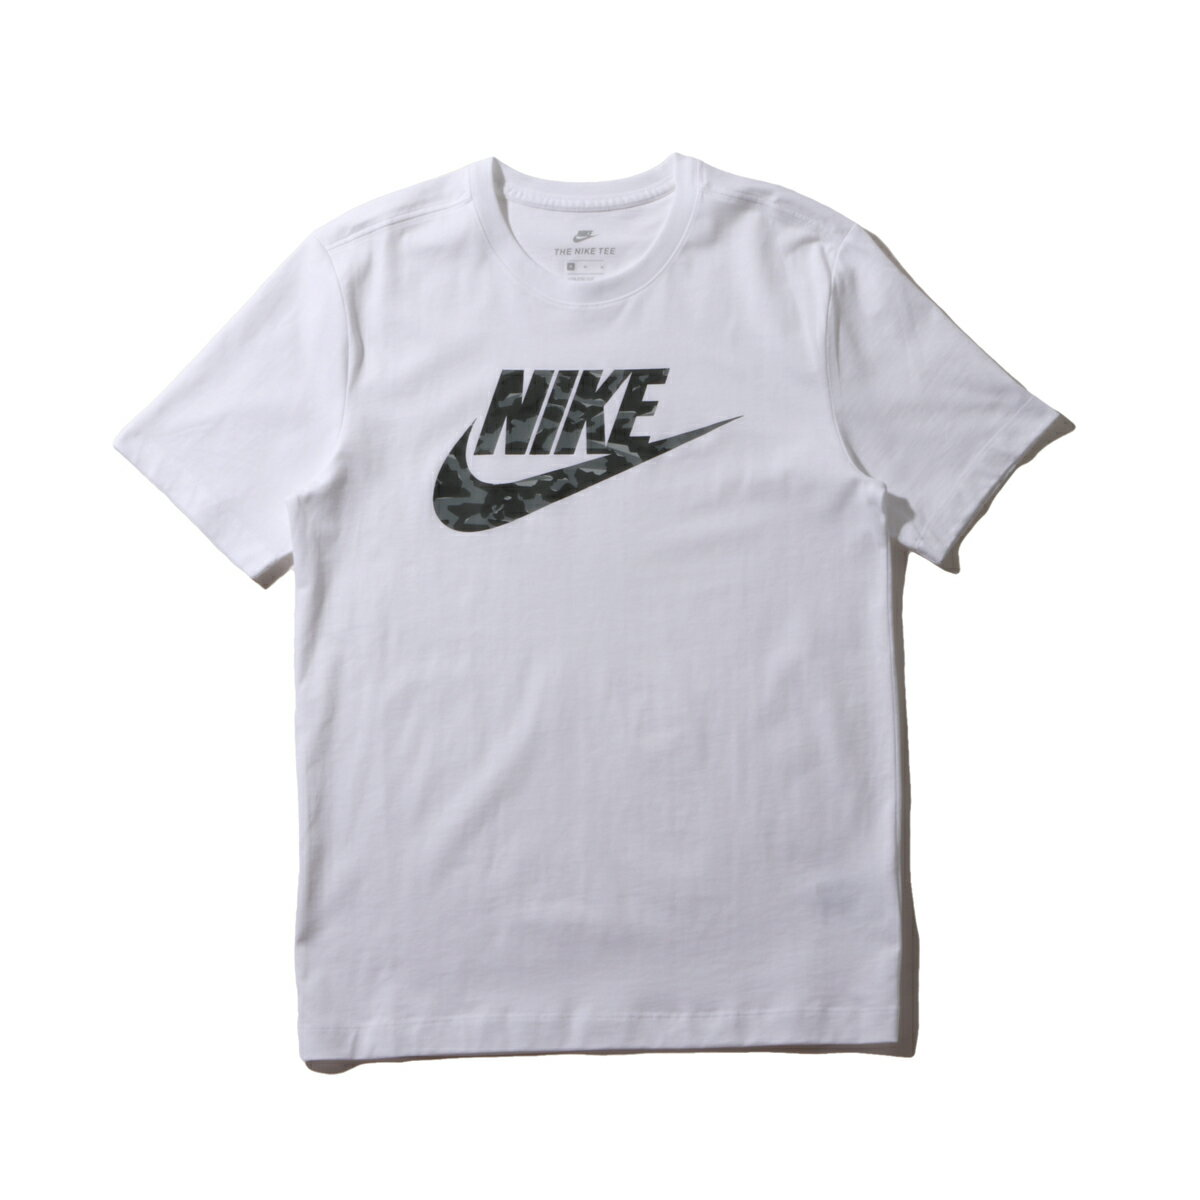 NIKE AS M NSW TEE CAMO PACK 2 AS(ナイキ NSW カモ パック S/S Tシャツ 2)WHITE/COOL GREY/WOLF GREY【メンズ Tシャツ】18FW-I